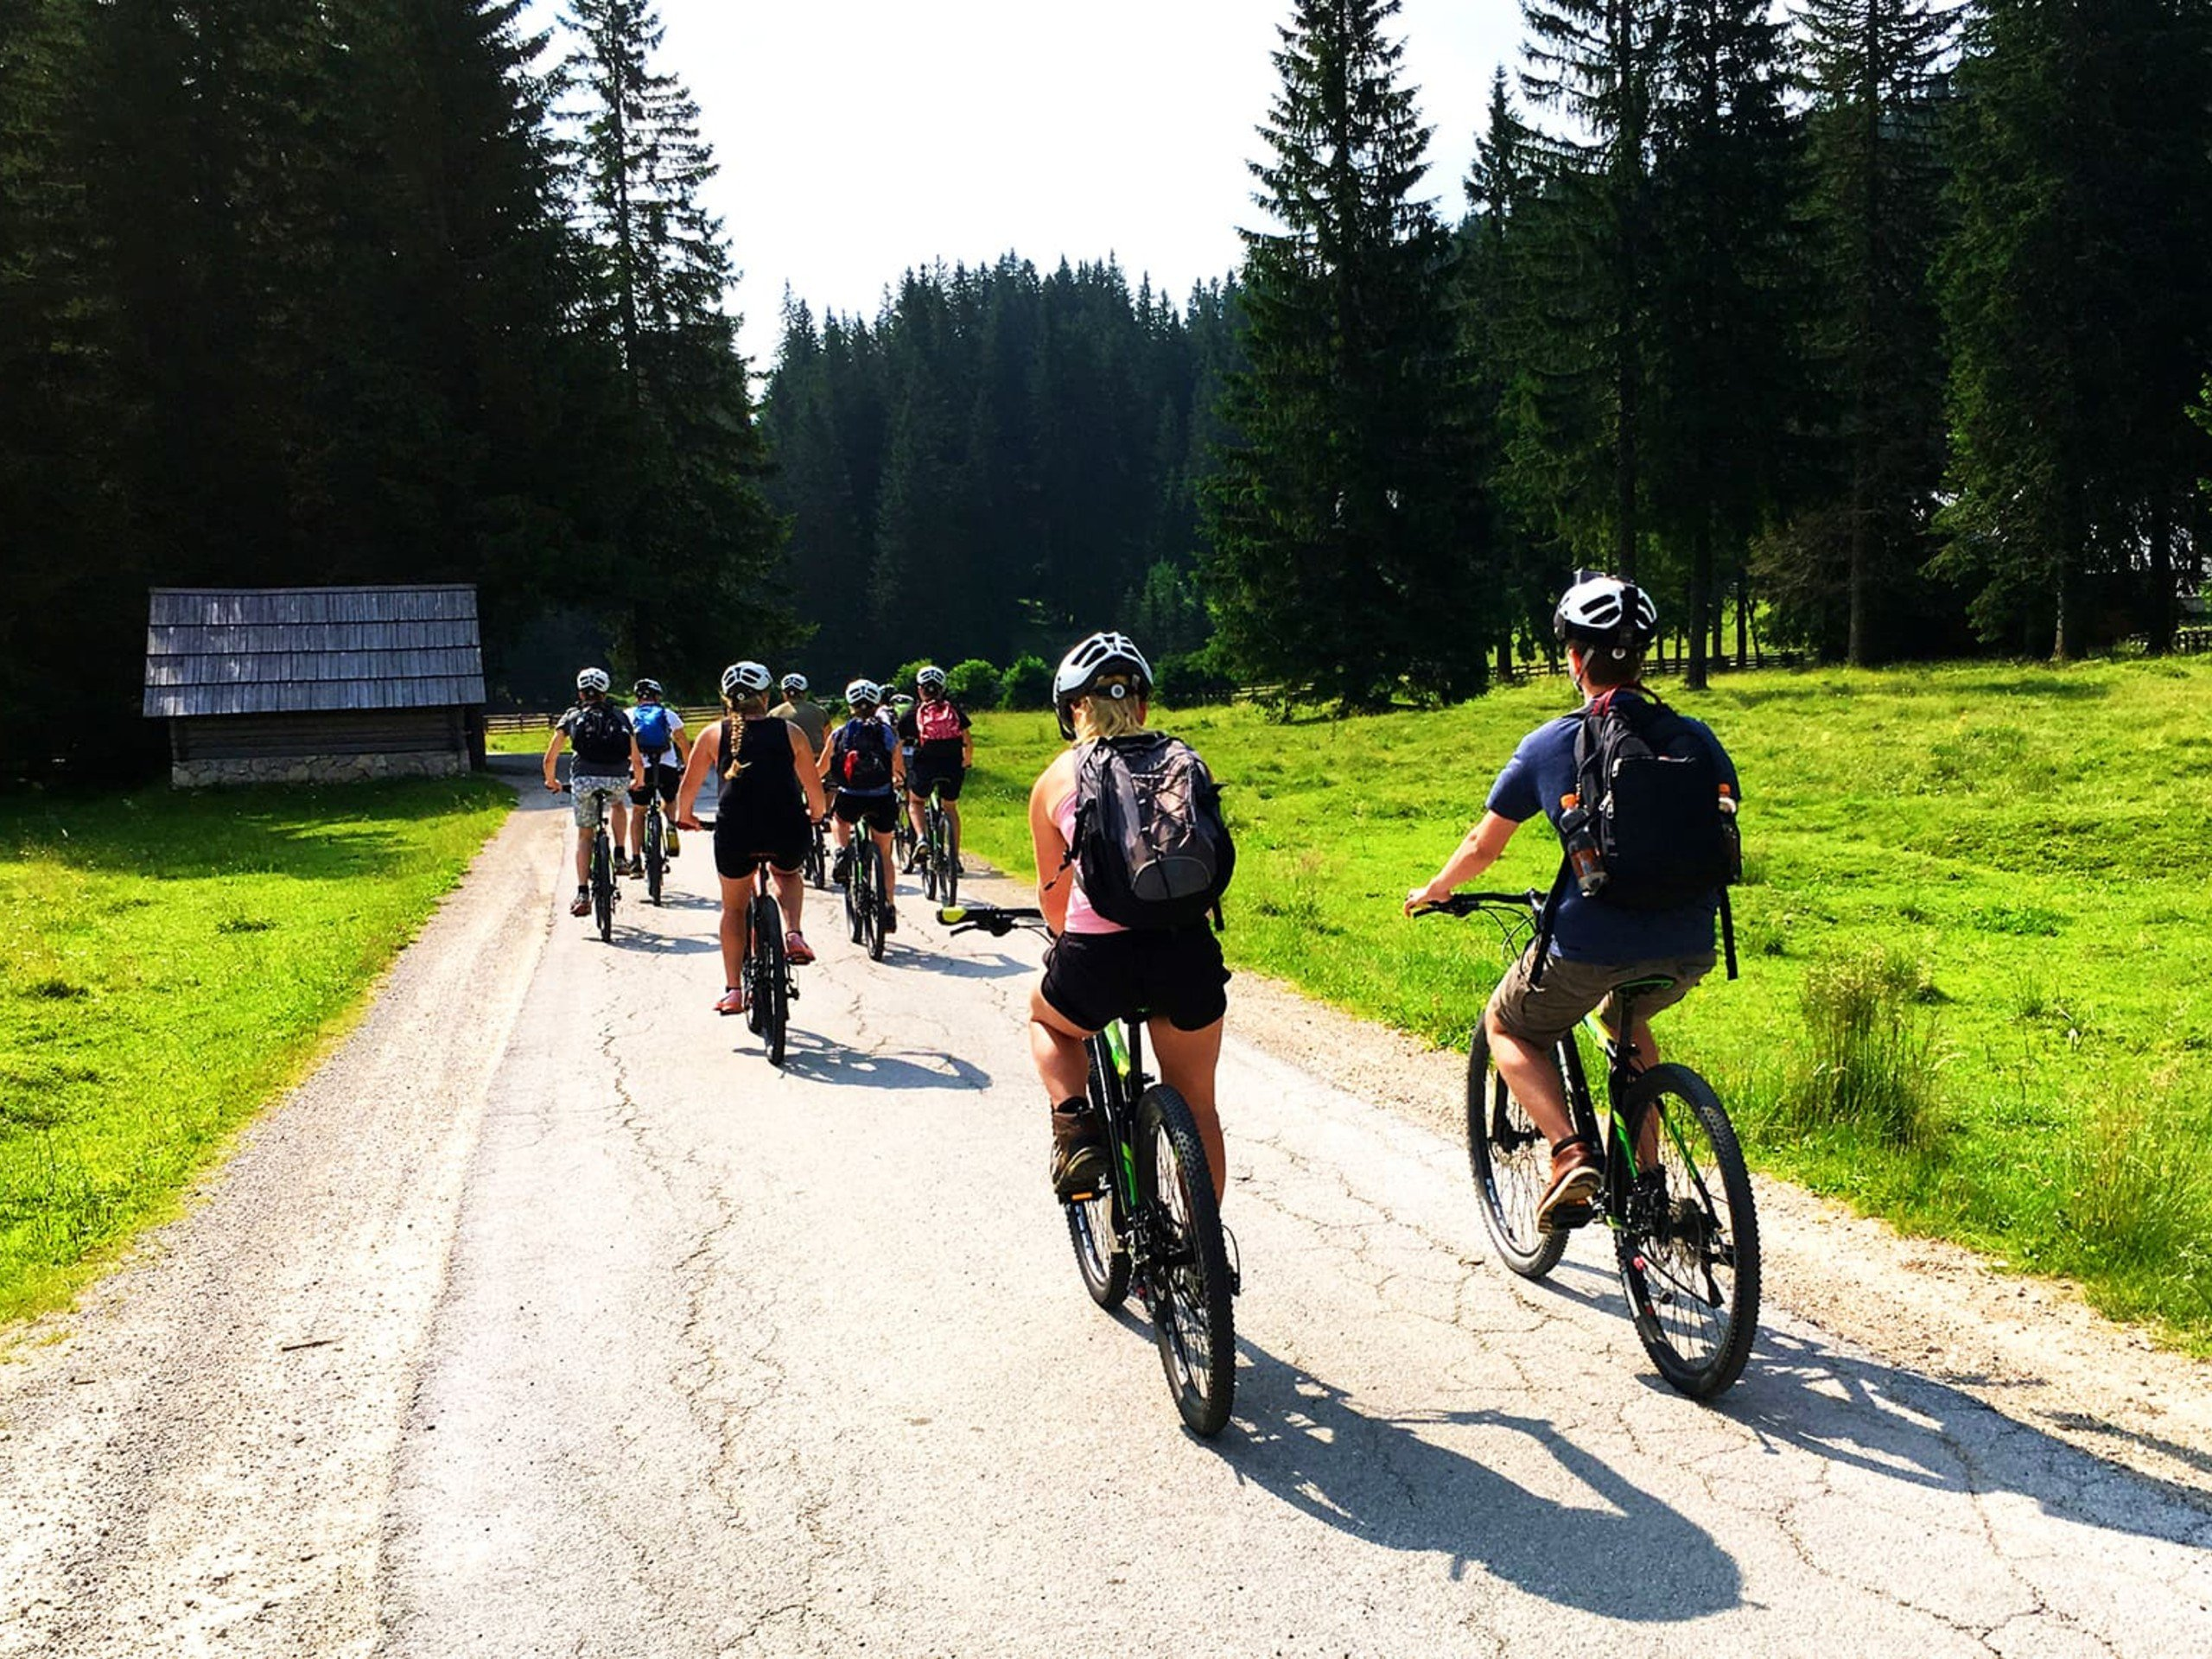 Group of cyclists riding the gravel road in Slovenia